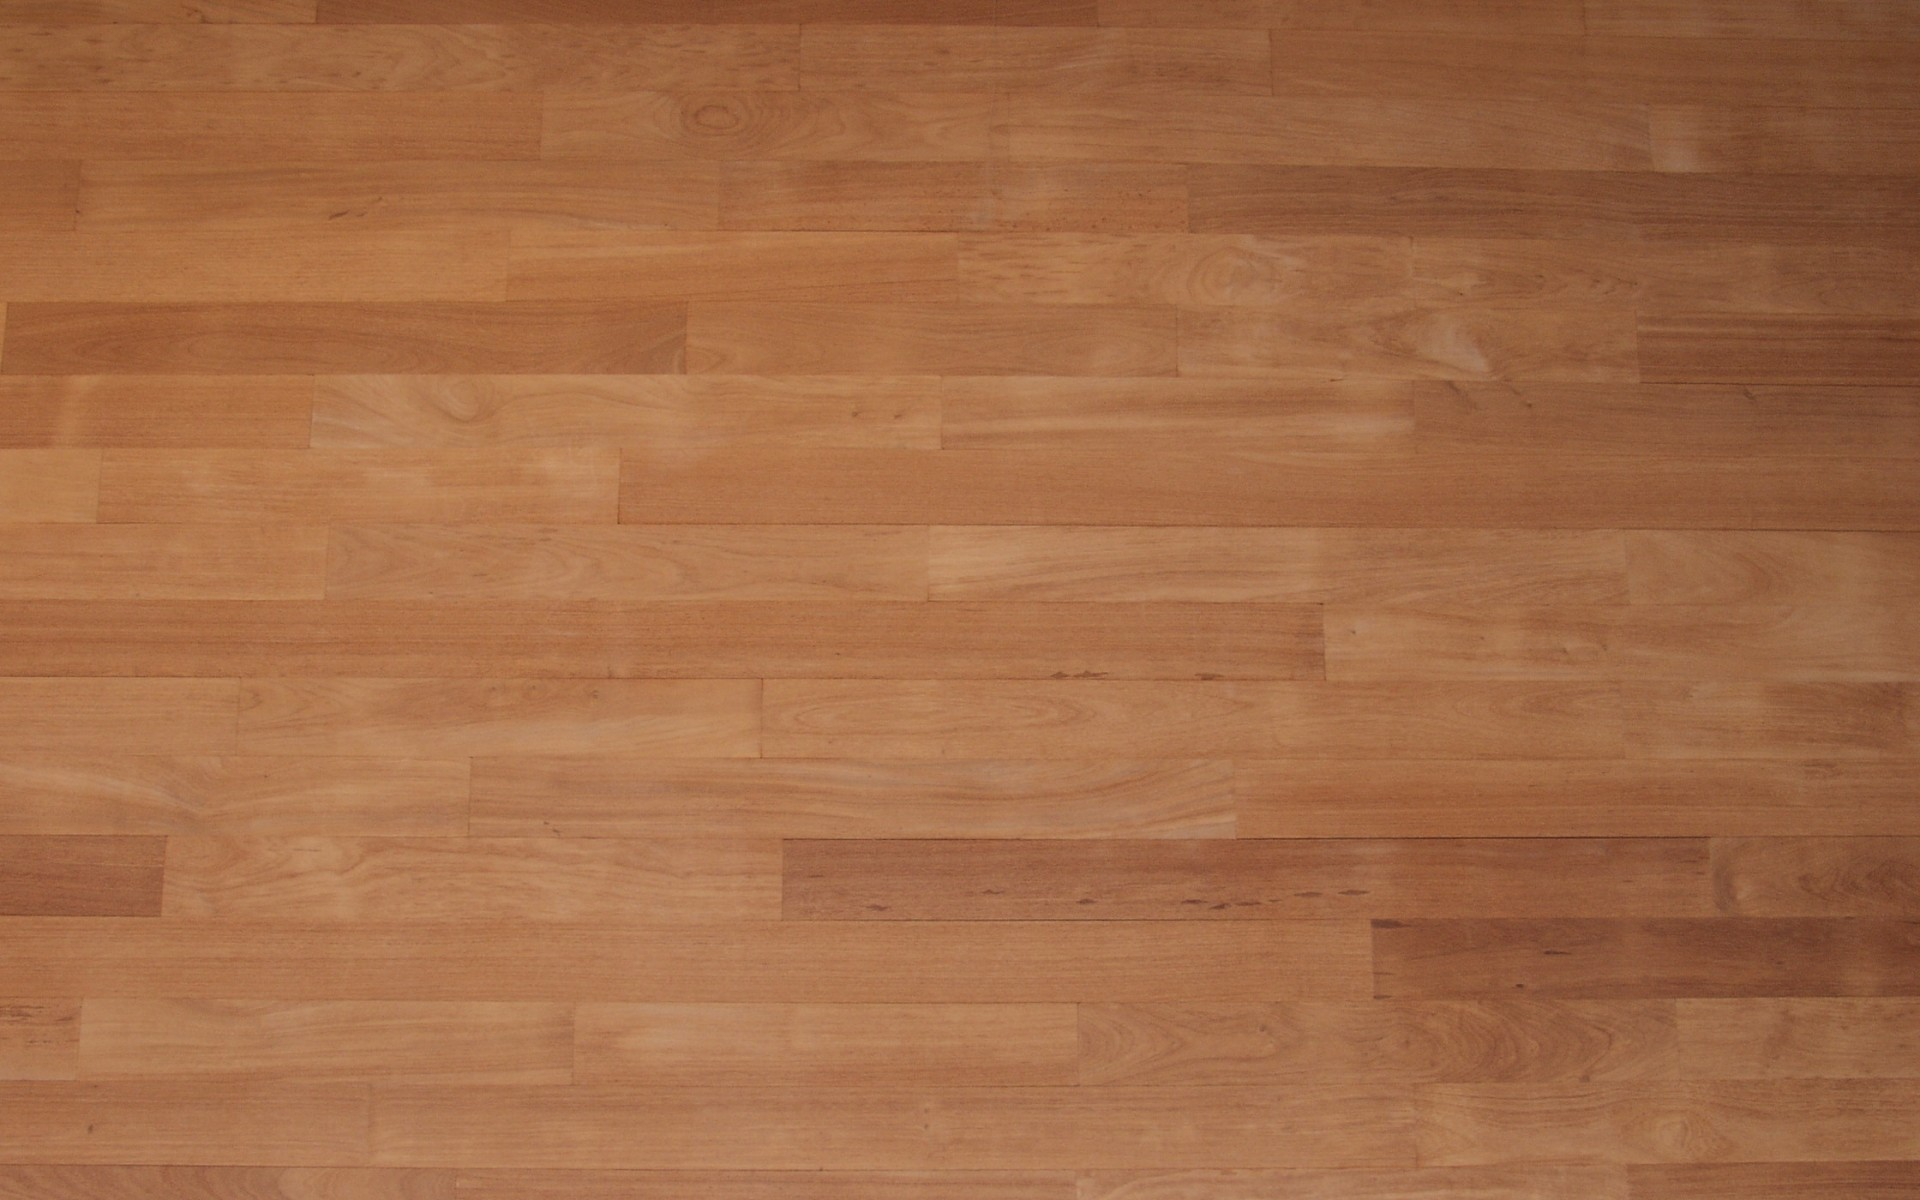 Hardwood Floor Wallpaper 48 Images